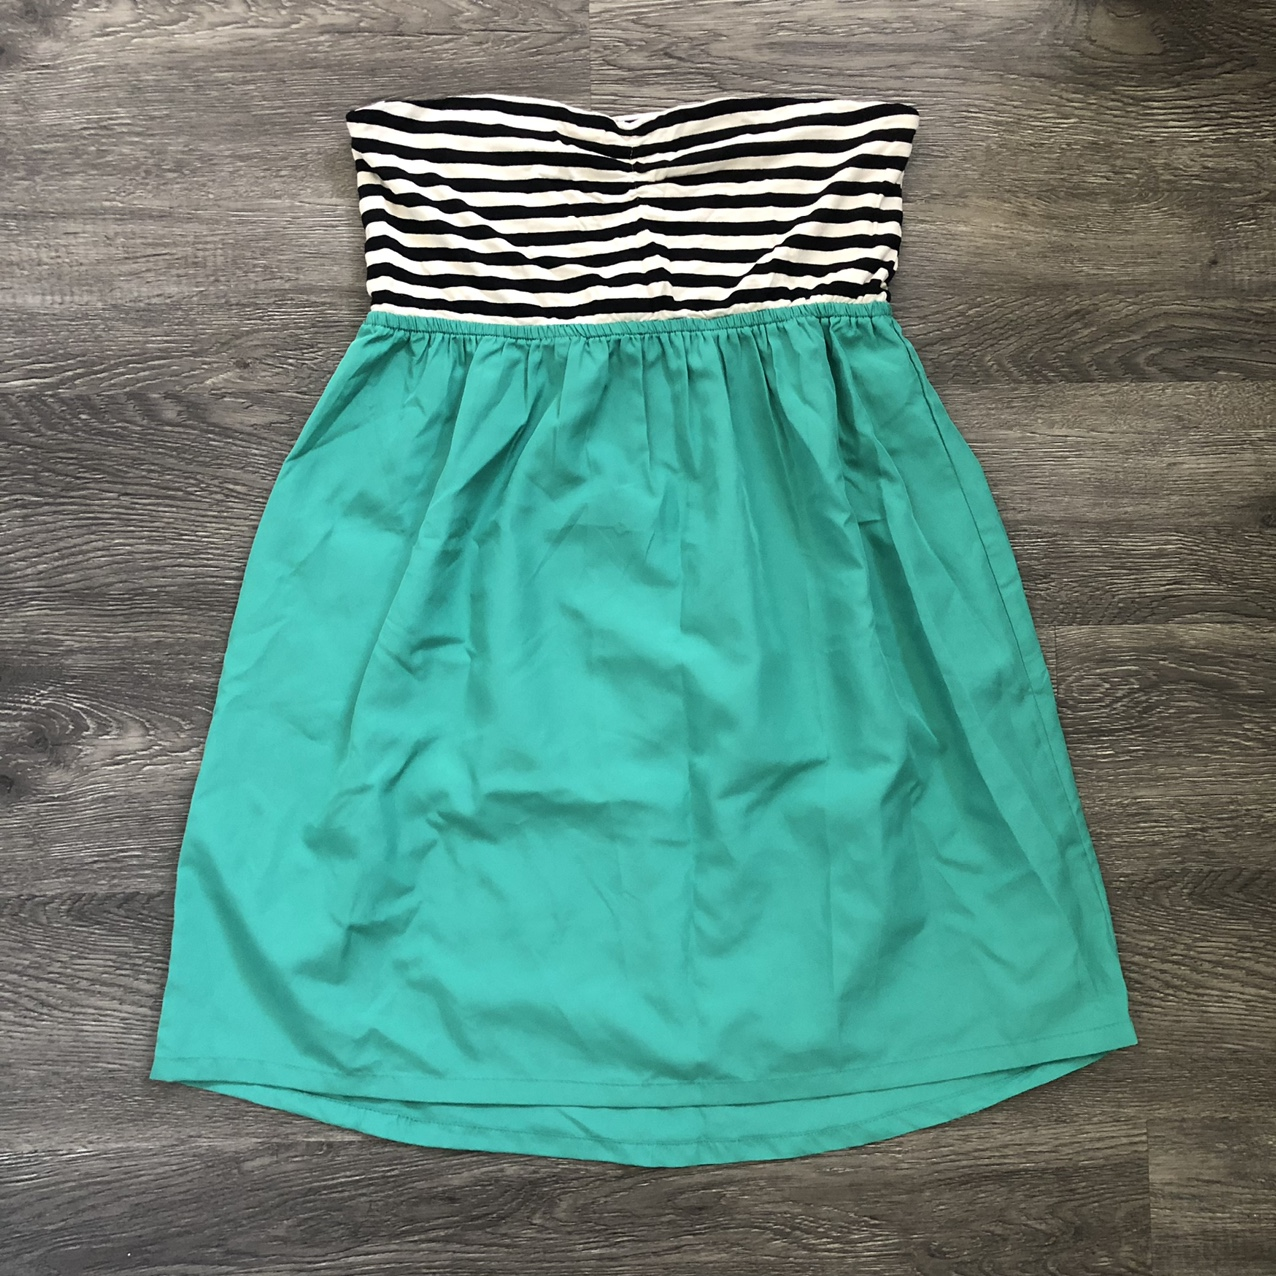 Product Image 1 - Cute strapless dress by Roxy,